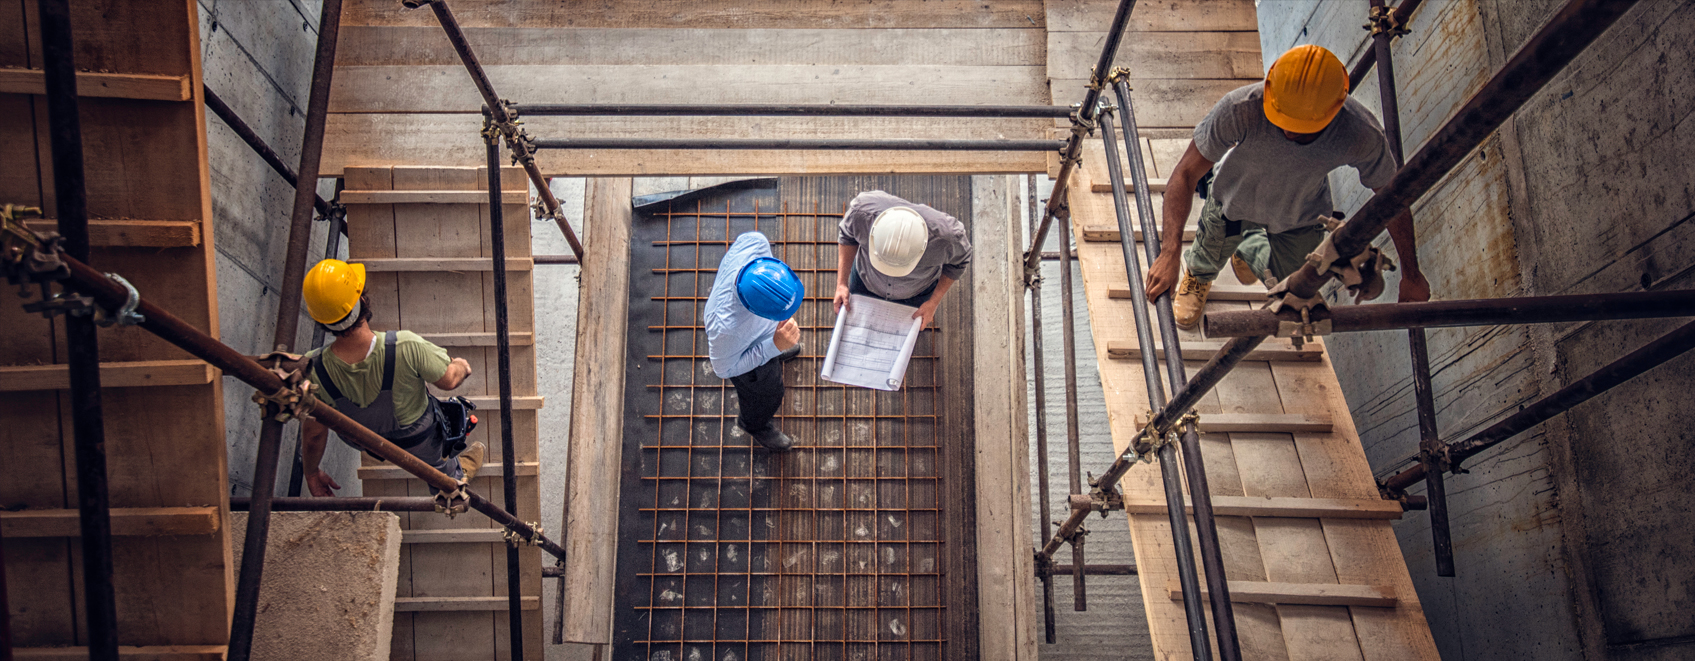 overhead view of construction professionals, talking together on a construction site